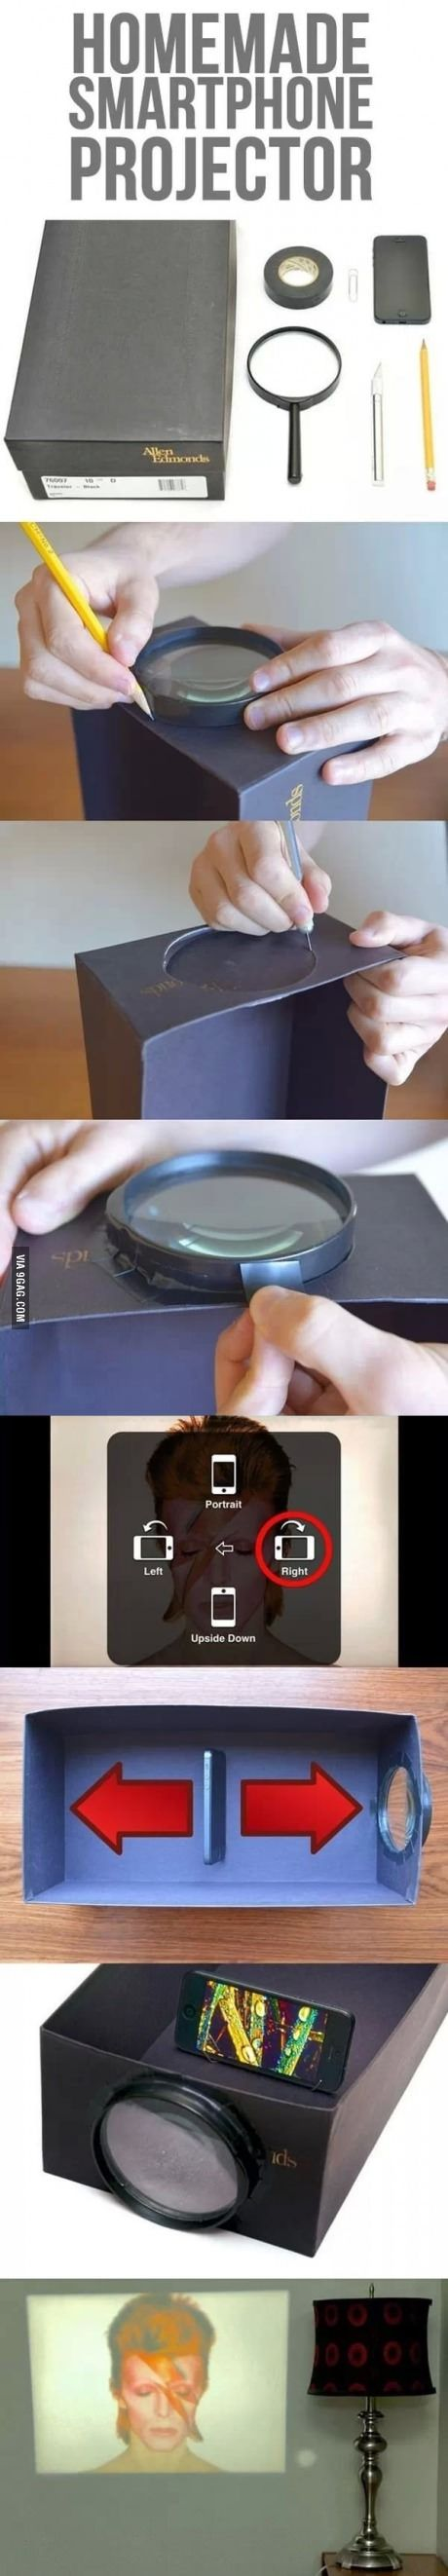 Homemade smartphone projector